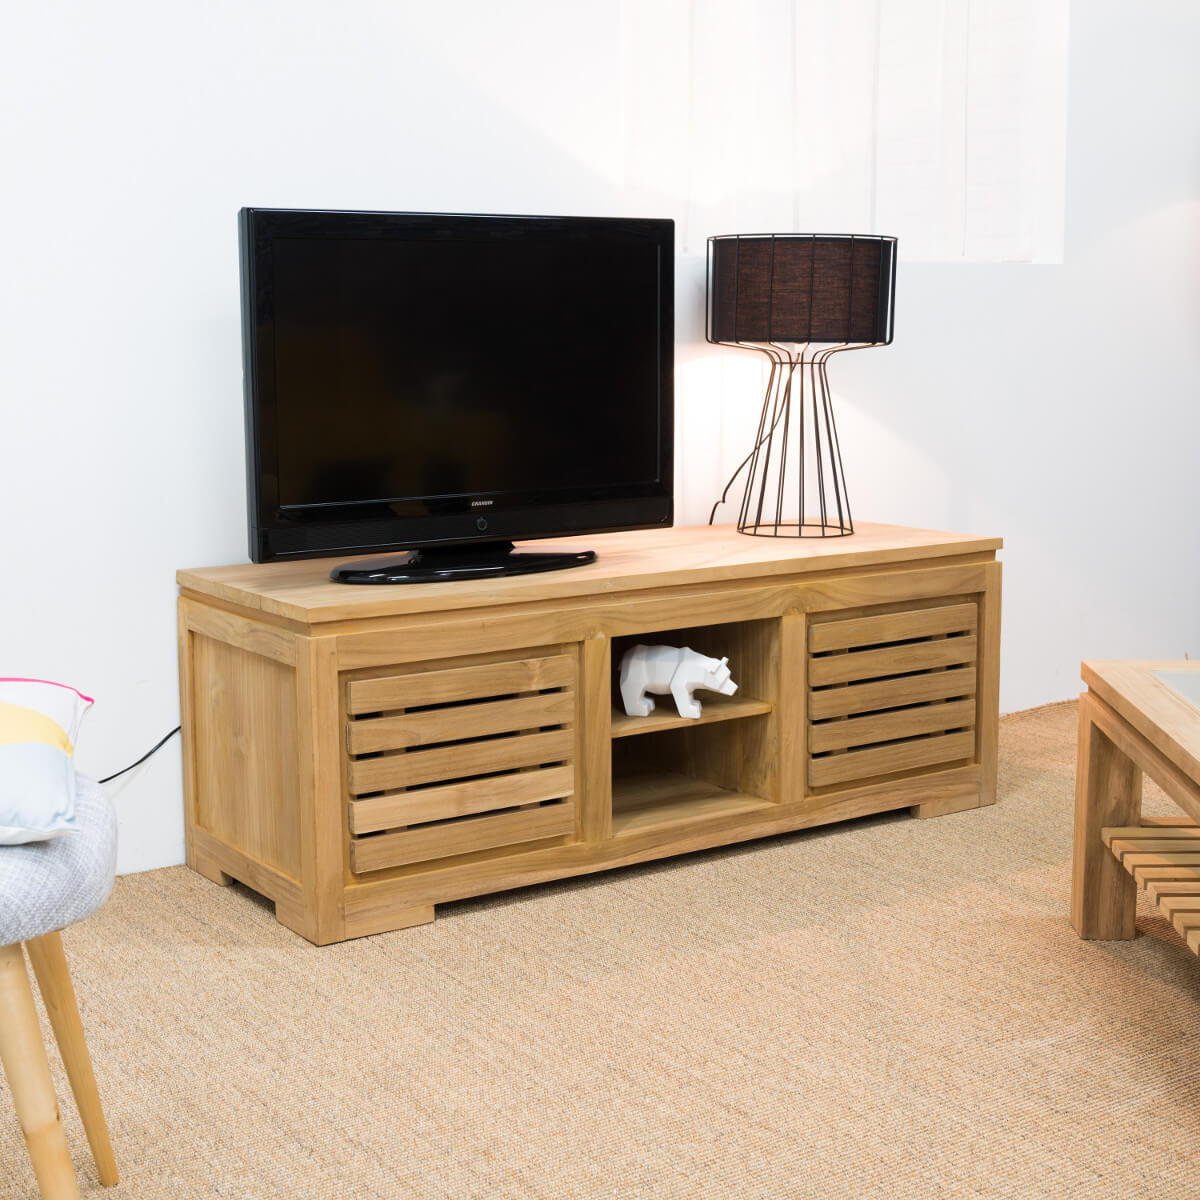 Meuble Tv Teck Meuble Tv Bois Naturel Rectangle Zen 140 Cm # Meuble Tv En Teck